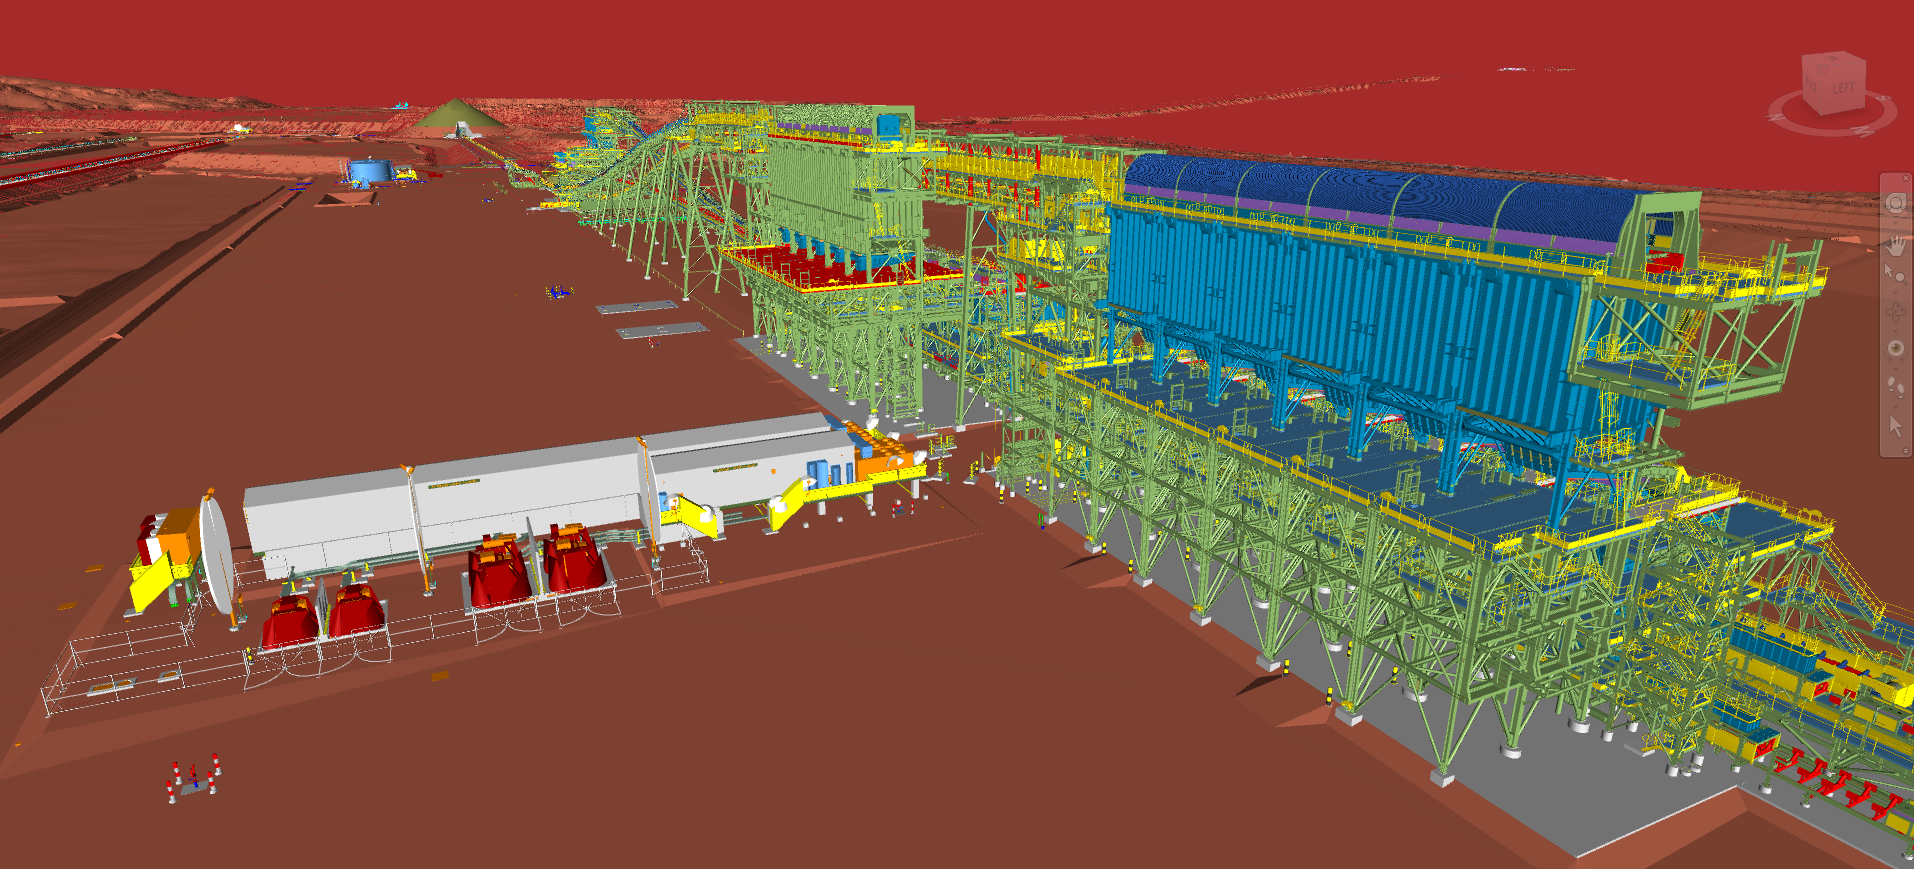 Revit modelling, CAD drafting for building services and BIM management for all types of buildings